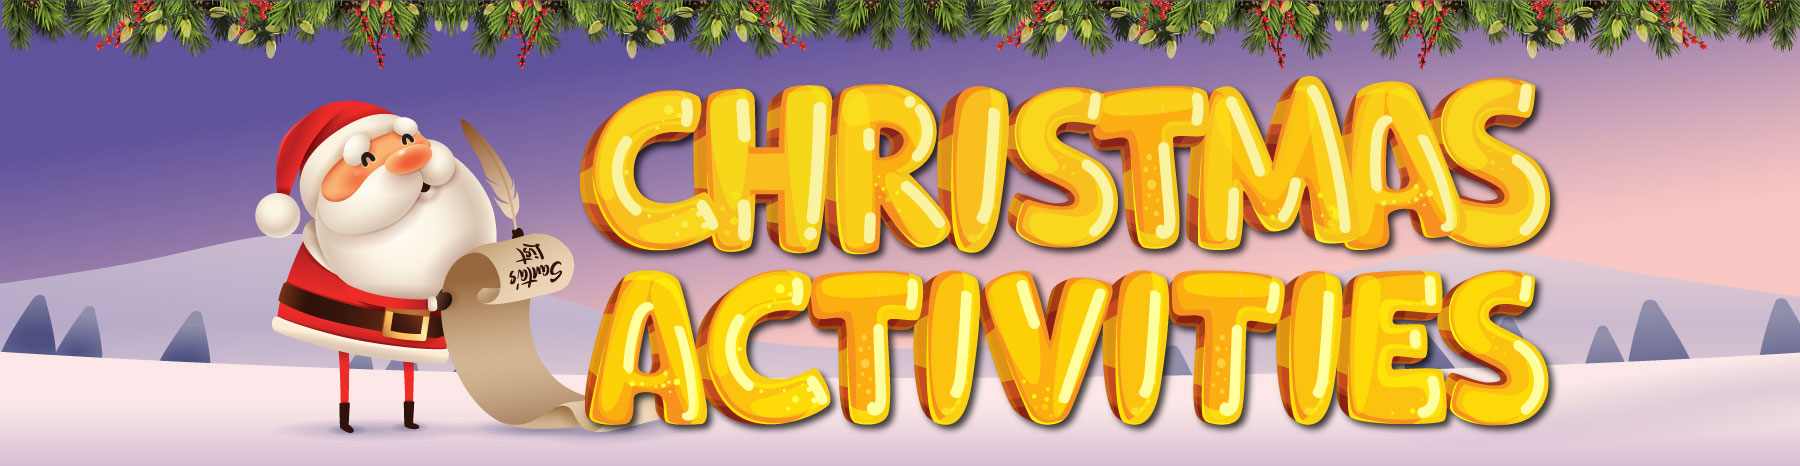 Christmas activities at Holmview central shopping centre